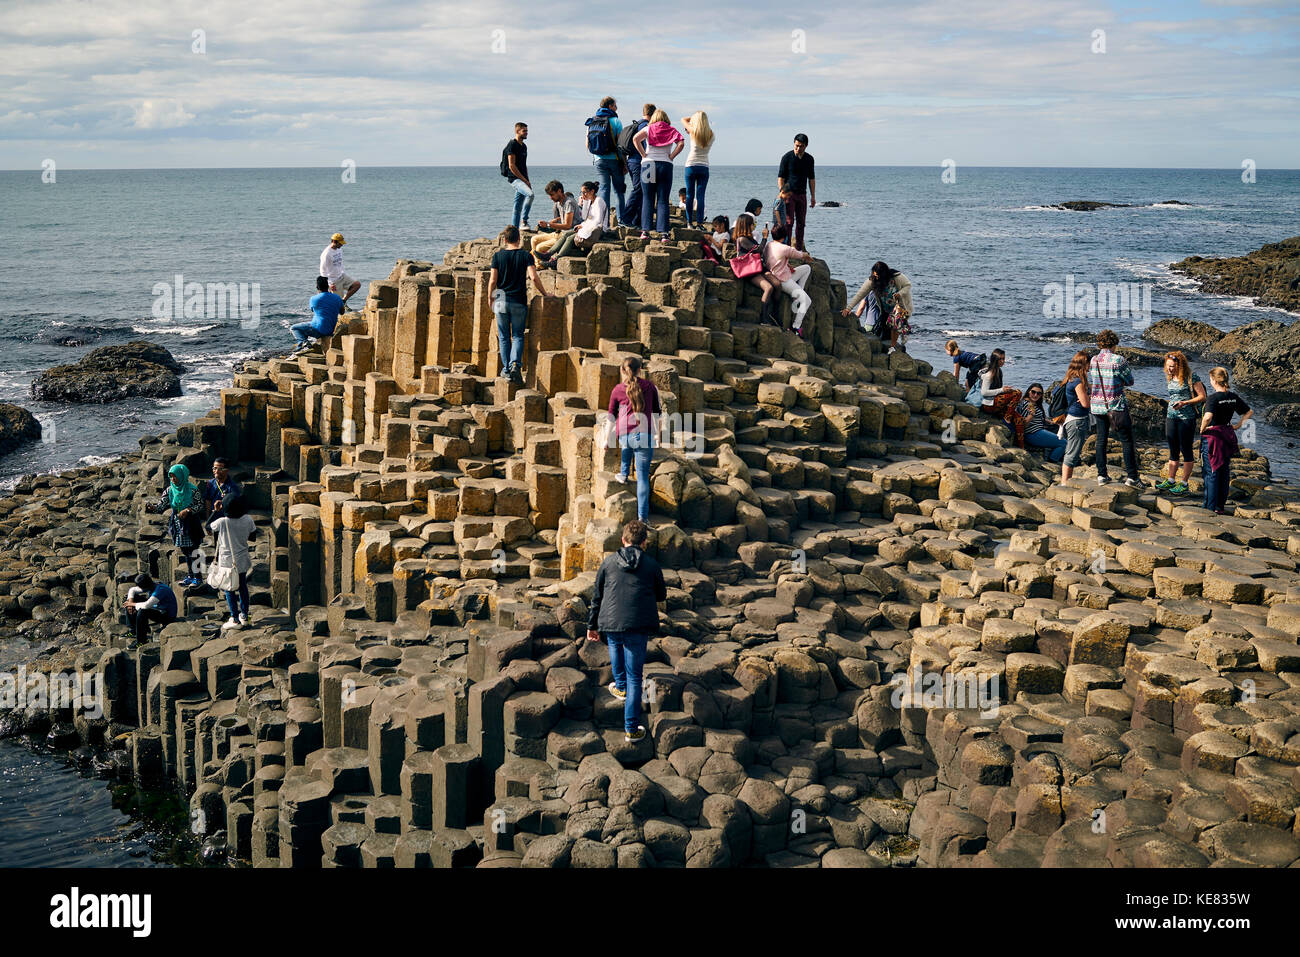 Giant's Causeway, Northern Ireland; Ireland - Stock Image